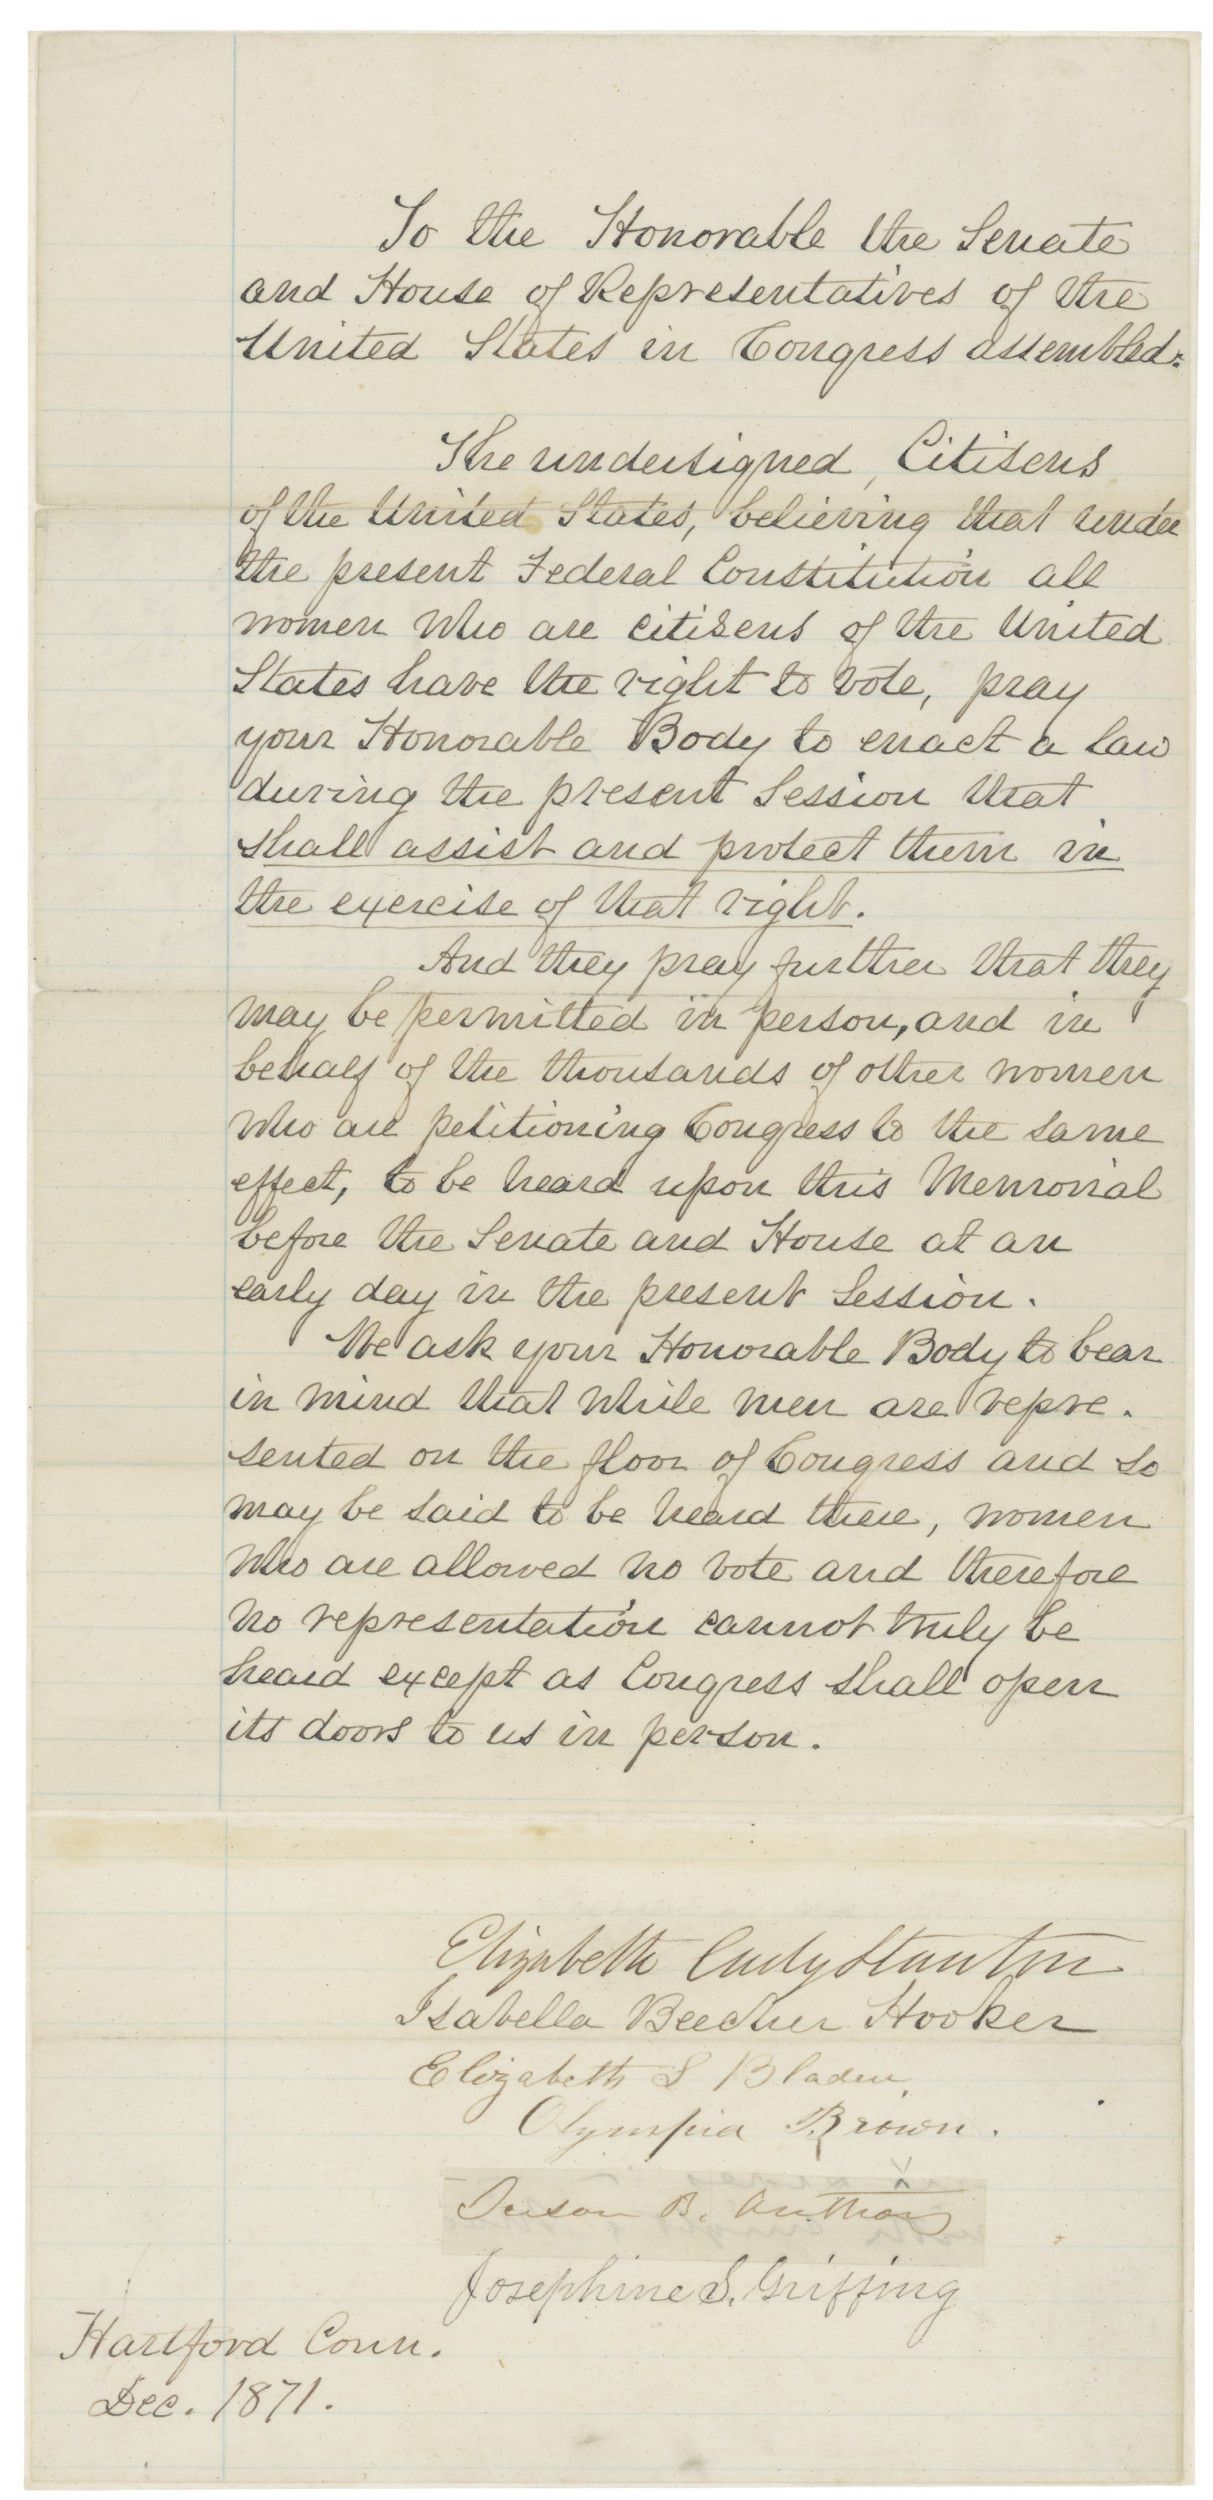 Letter to Congress from Elizabeth Cady Stanton, Susan B. Anthony and Others in Support of Women's Suffrage